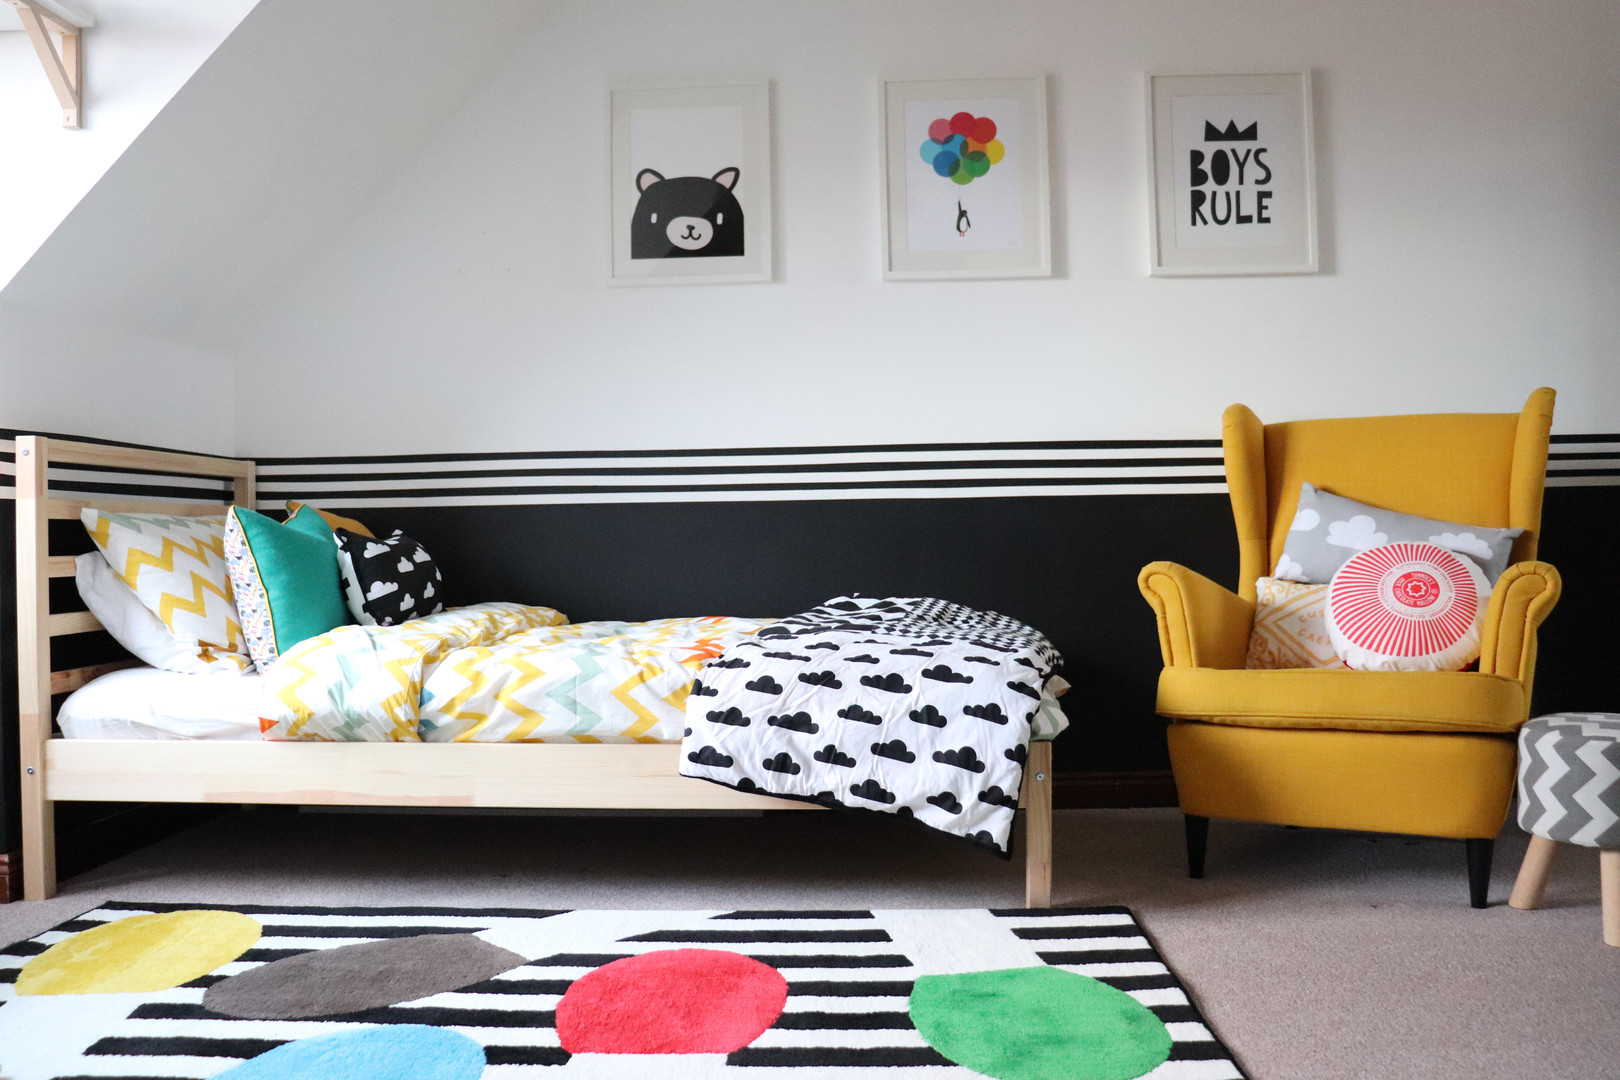 QUIRKY, FUN, COLOURFUL KIDS ROOM